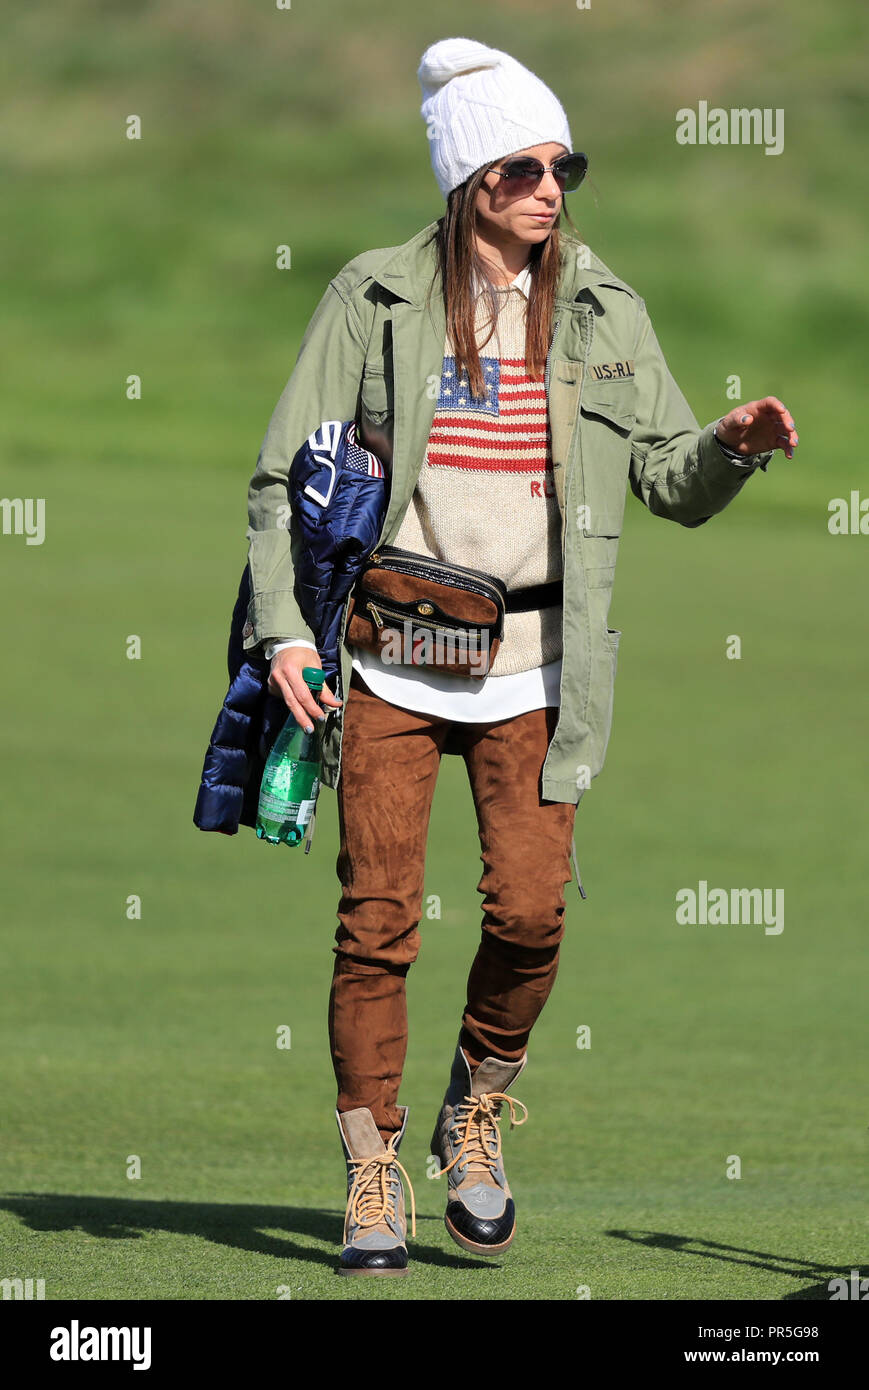 Tiger Woods Girlfriend Erica Herman During The Foursomes